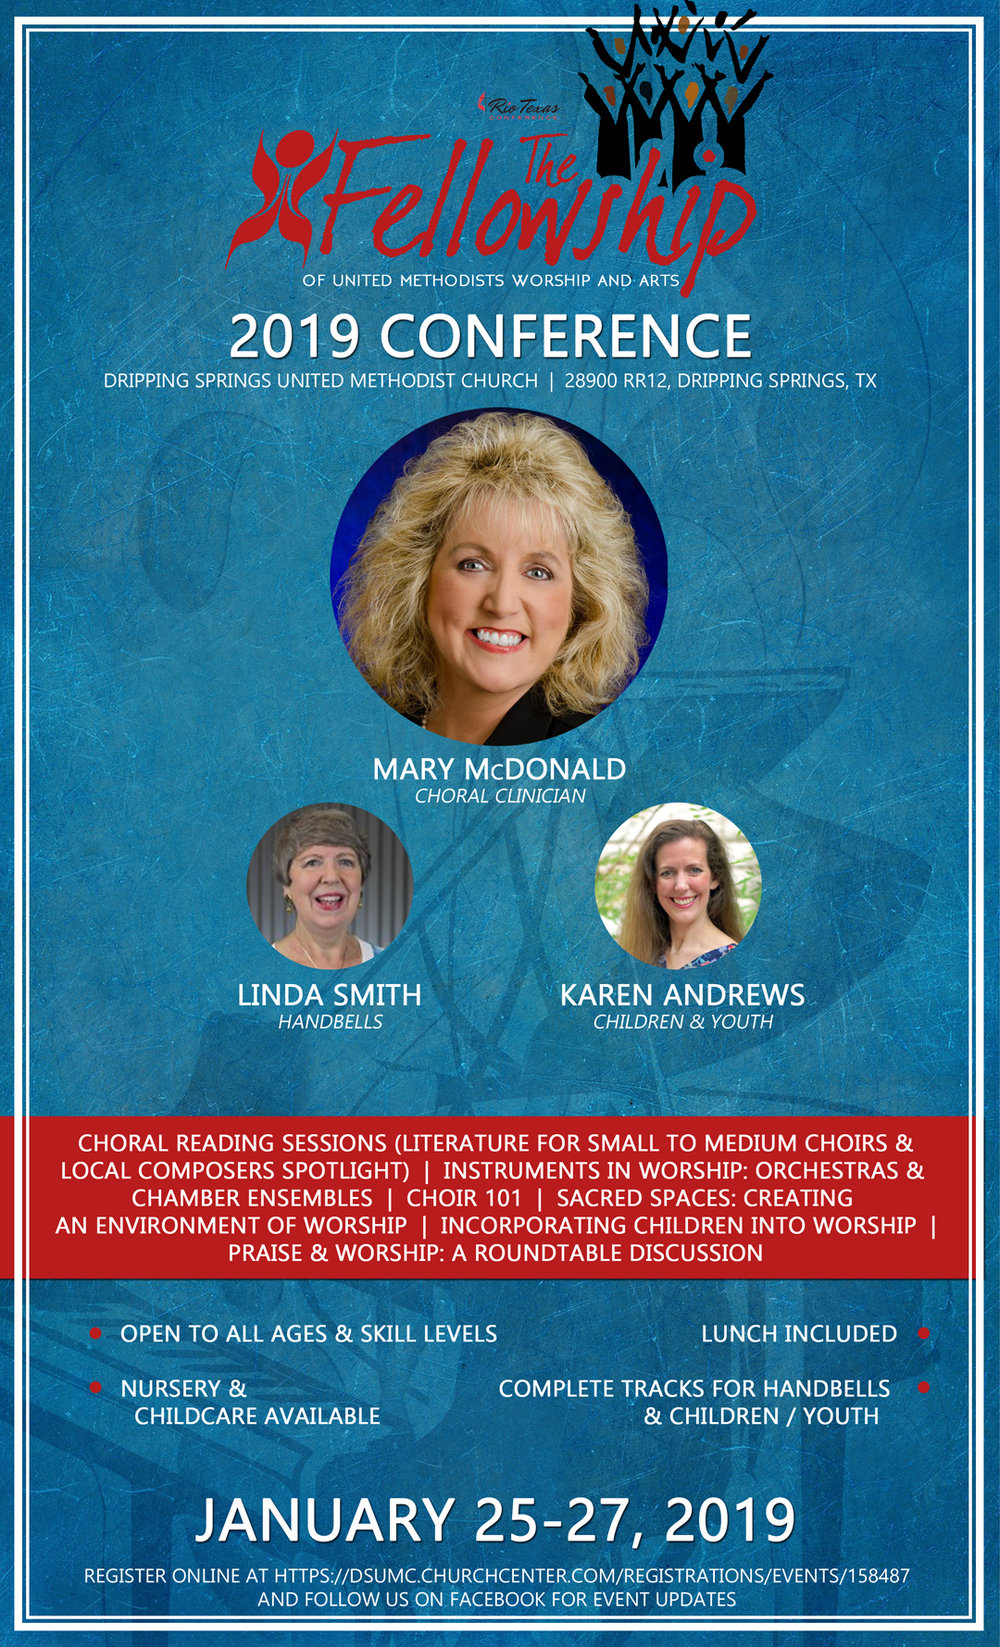 fumwa-conference-2019-flyer-copy.jpg